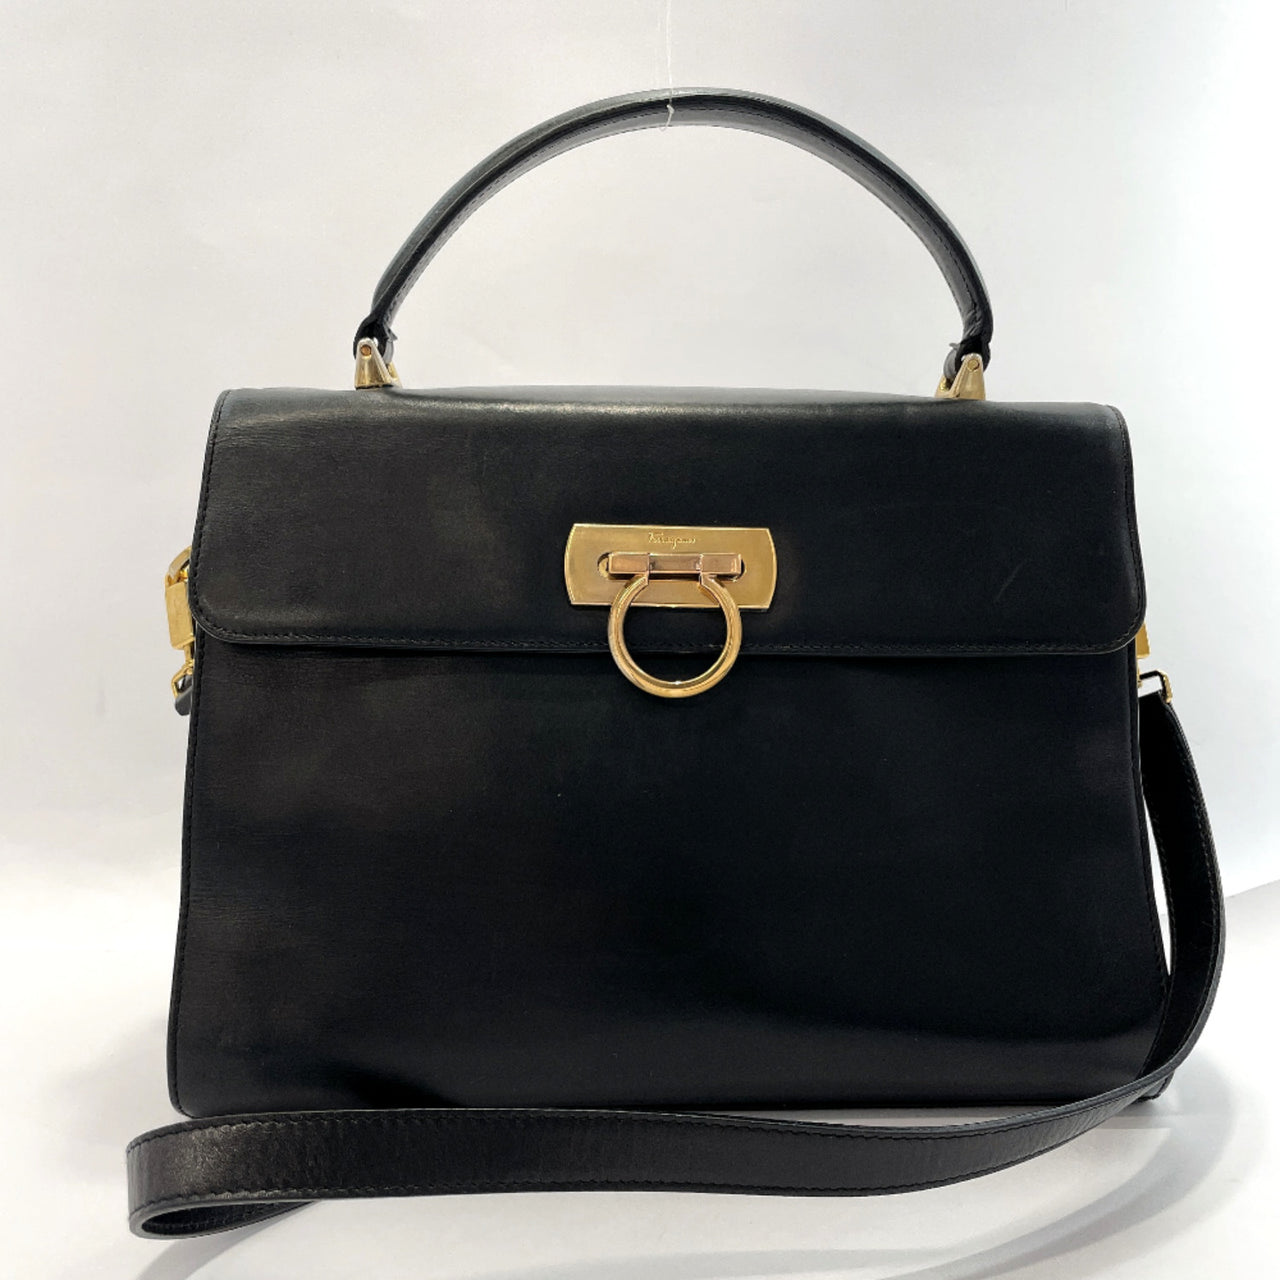 Salvatore Ferragamo Shoulder Bag O211654 Gancini 2way vintage leather black Women Used